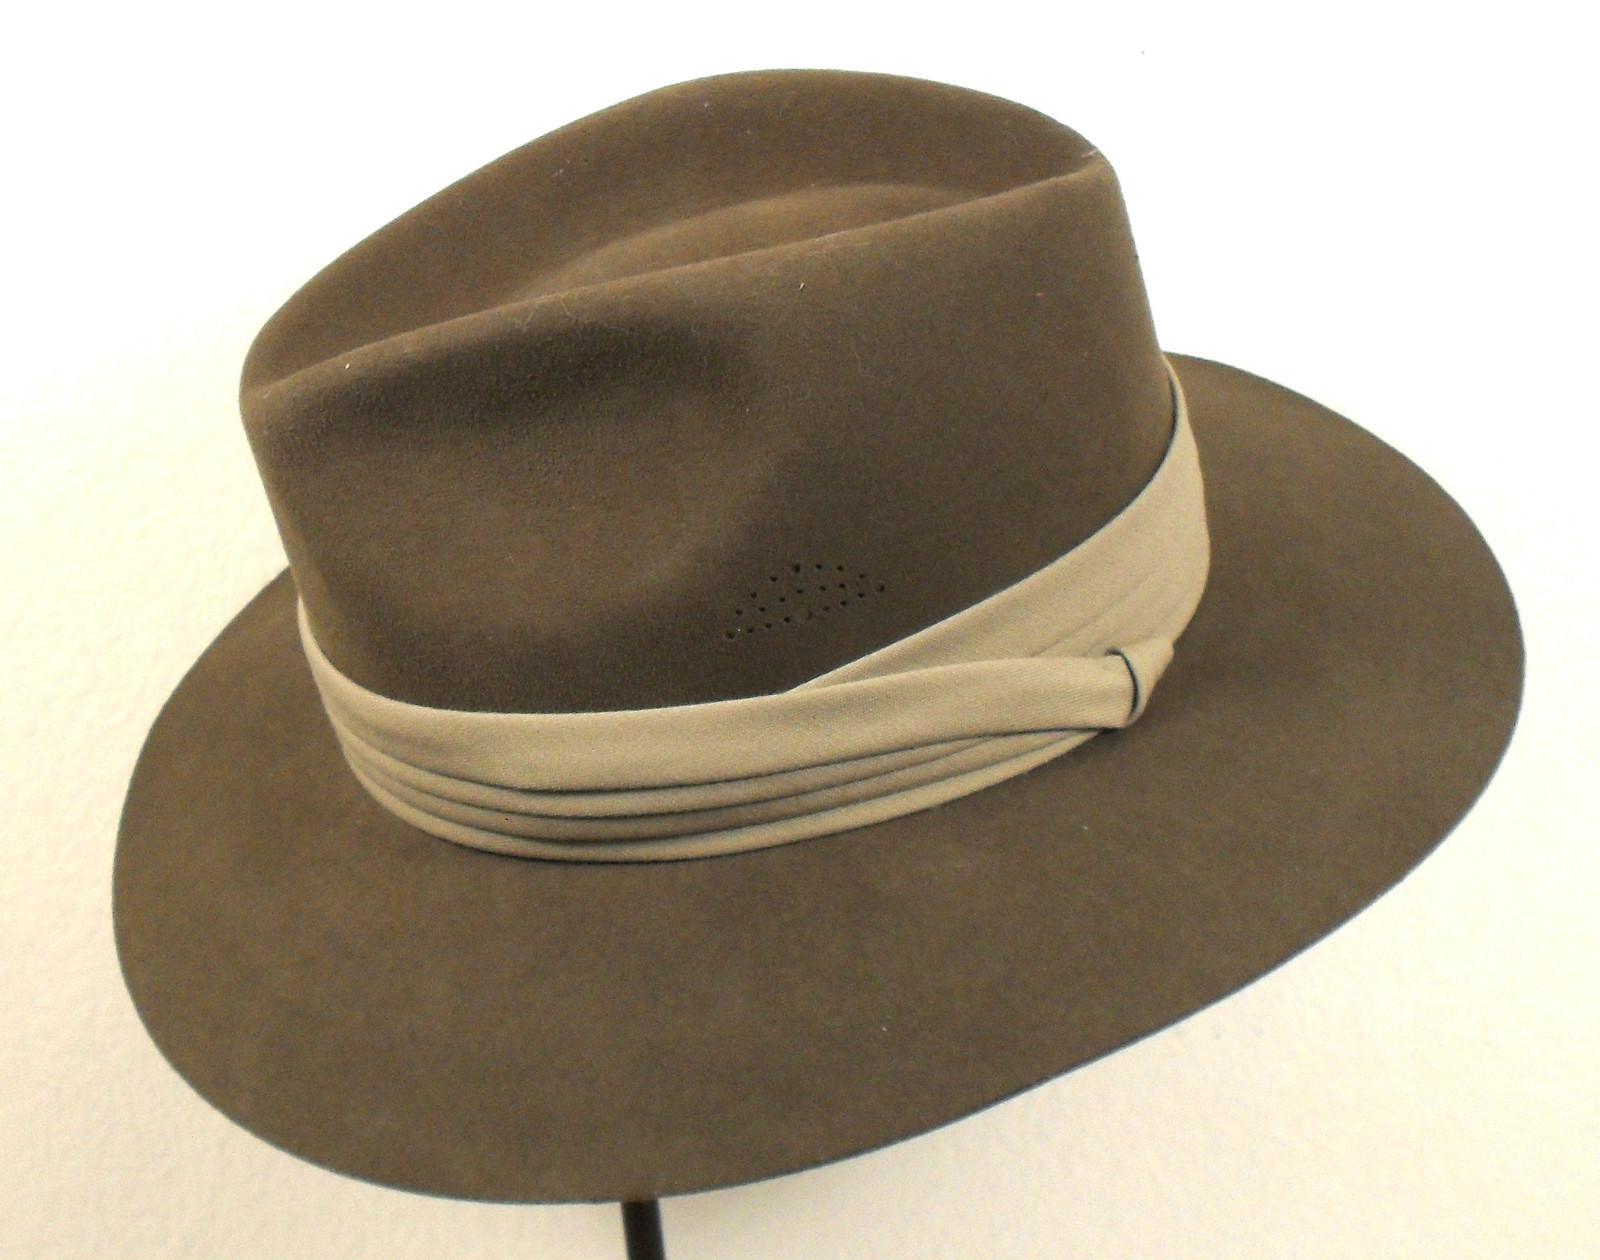 02d138596 Return of the Son of the Homemade Safari Hat Threads | The Fedora Lounge